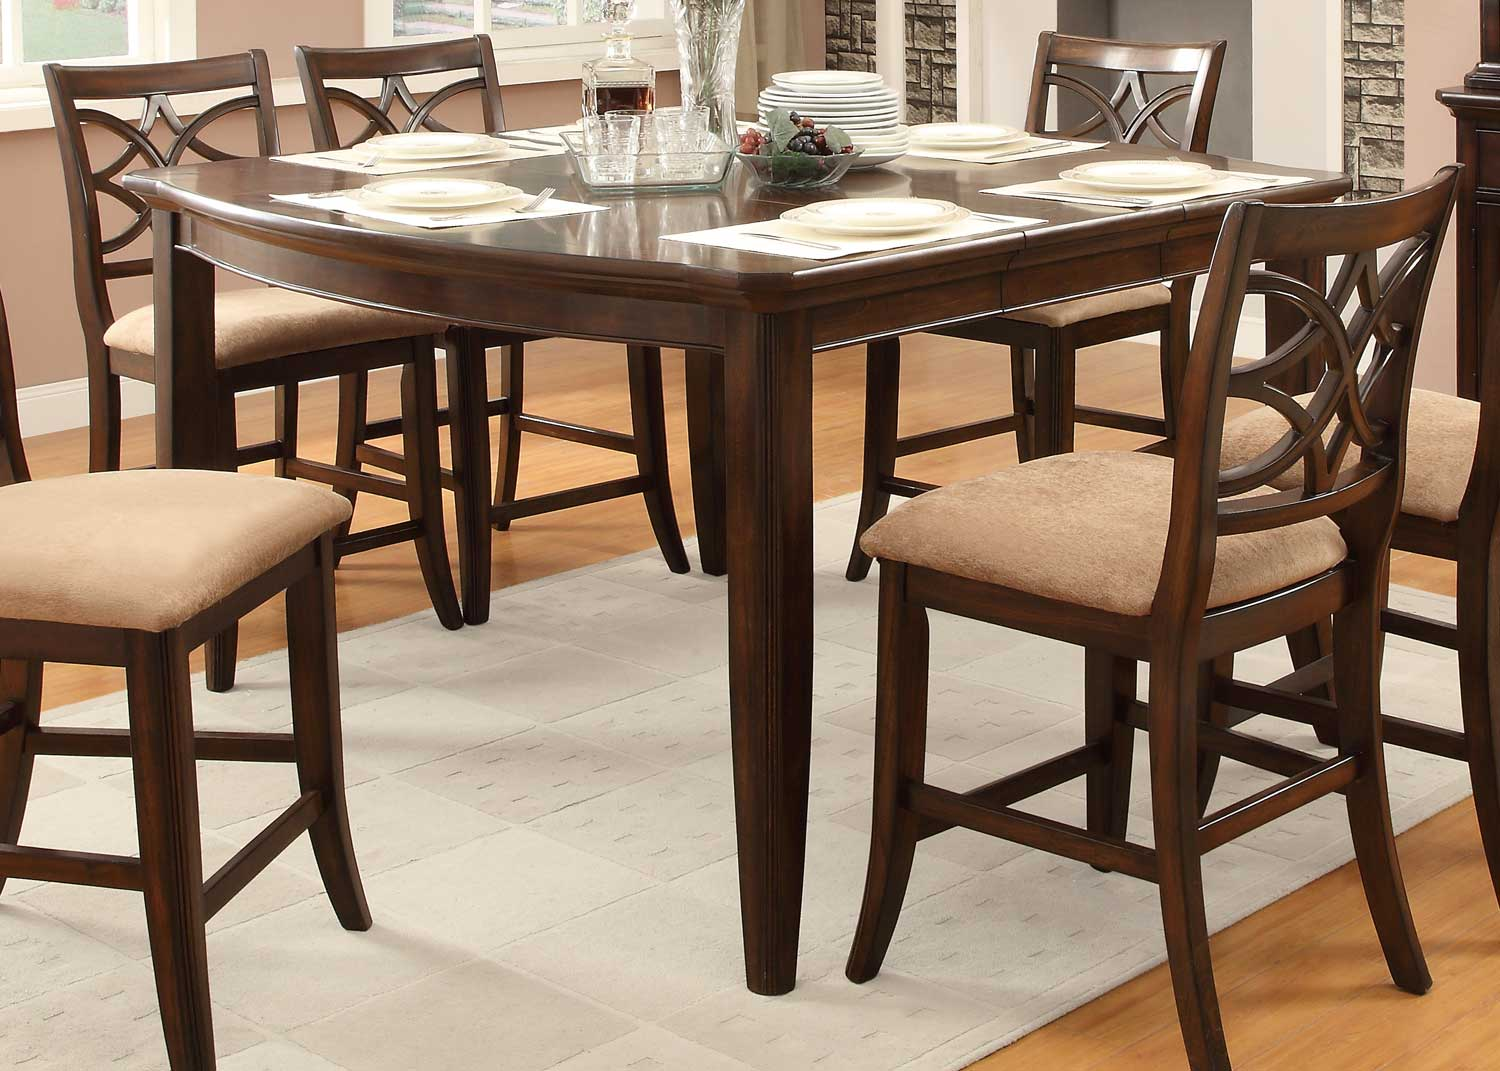 Homelegance Keegan Counter Height Table - Neutral Tone Fabric - Cherry